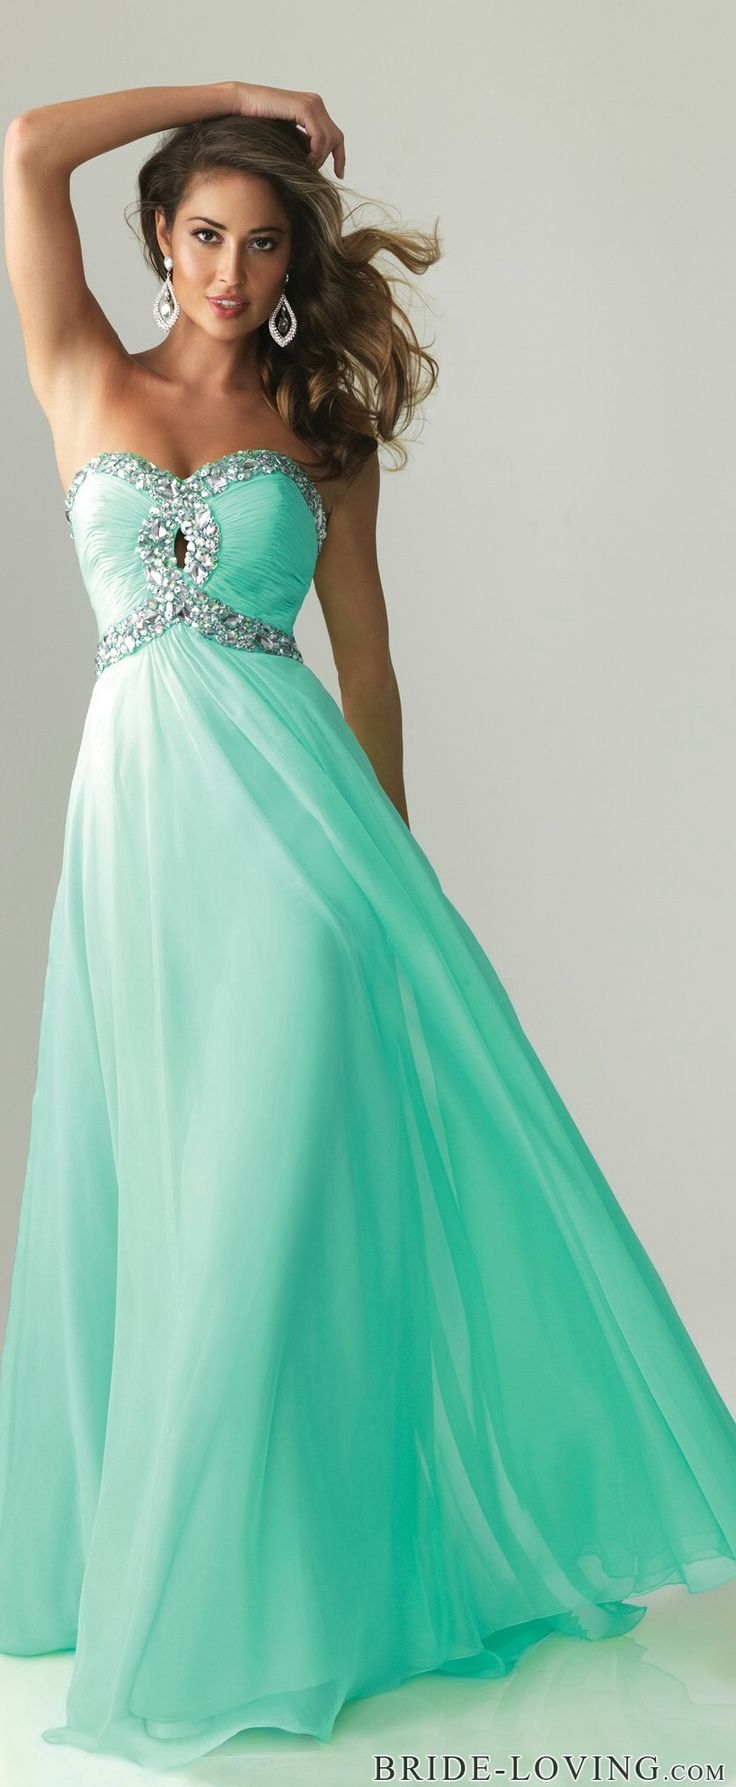 Mint formal gown loving the detail on the bust and the way it flows out very simple but eligant